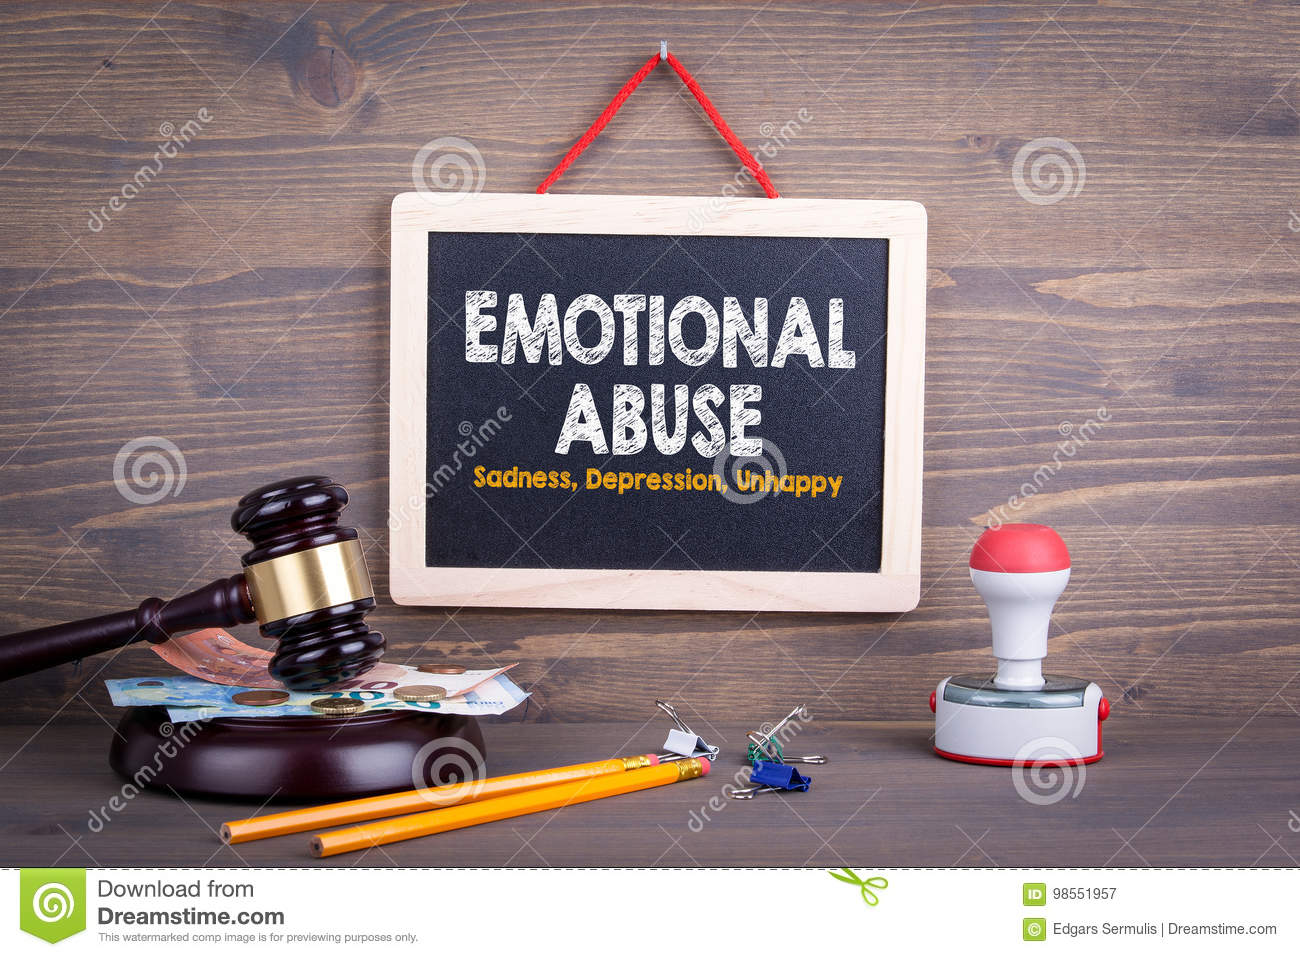 Emotional Abuse concept. Sadness Depression Unhappy. Chalkboard on a wooden background